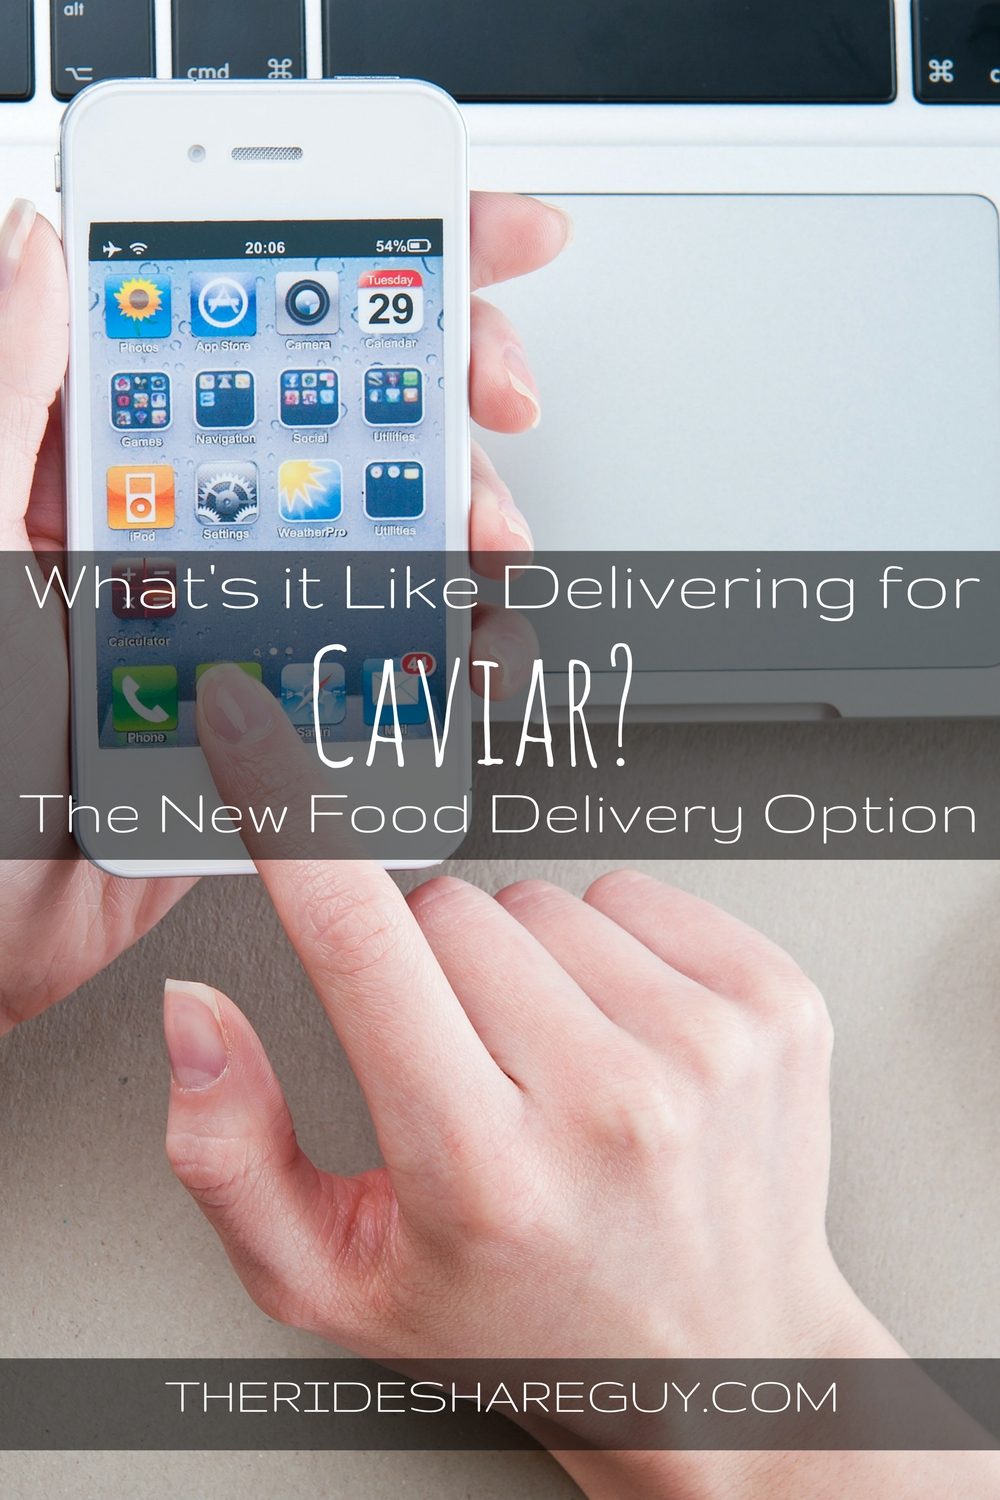 Uber Lease Car >> Caviar Driver - What's It Like To Be a Courier for Caviar?